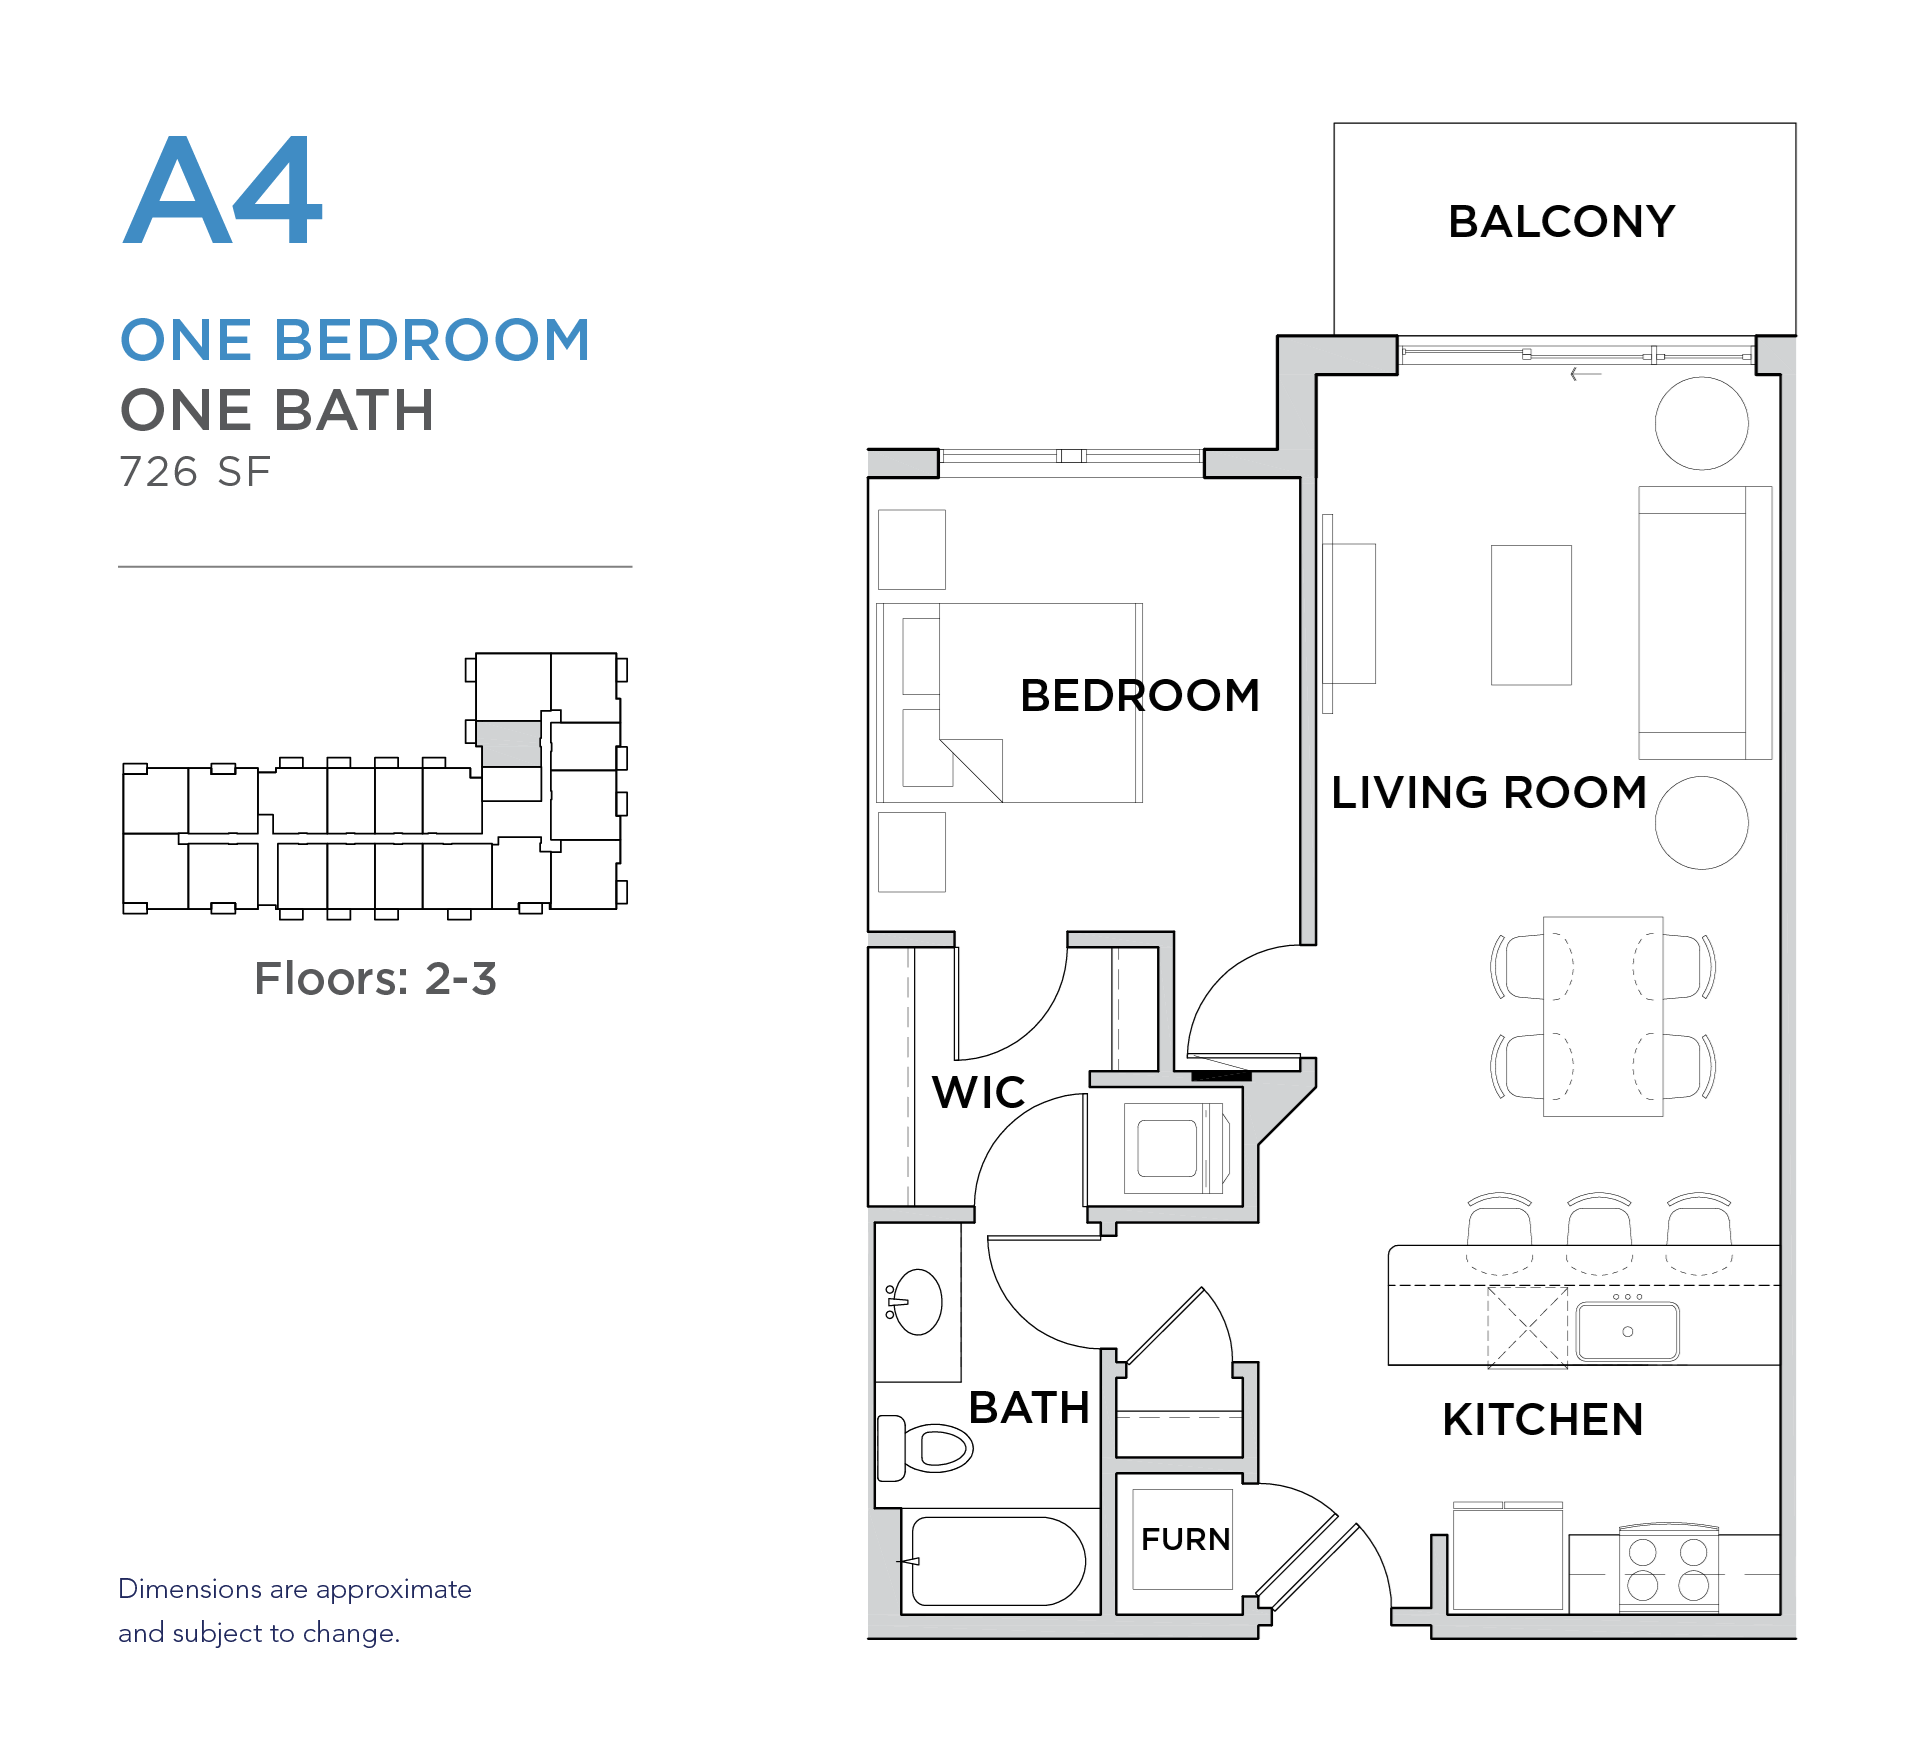 101 West 1 bed 1 bath 726 square foot apartment floor plan